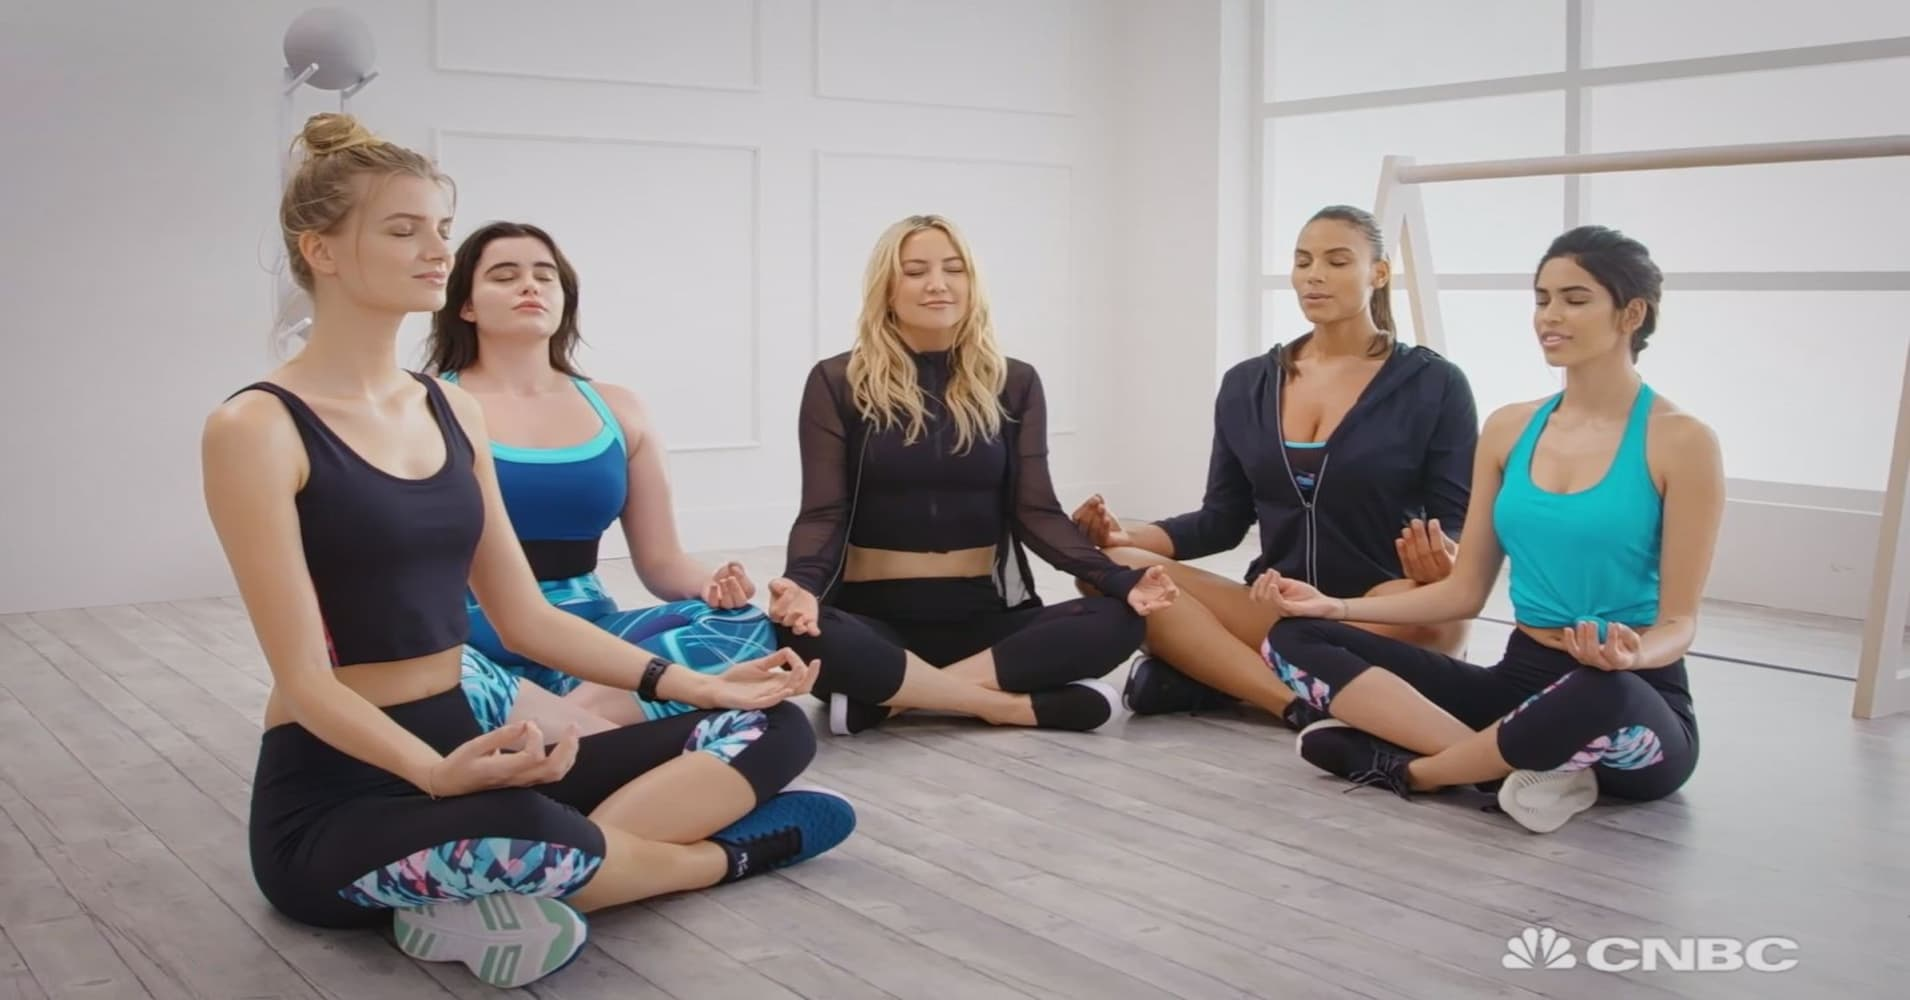 0dde681240 Actress Kate Hudson on her sportswear brand Fabletics' London expansion